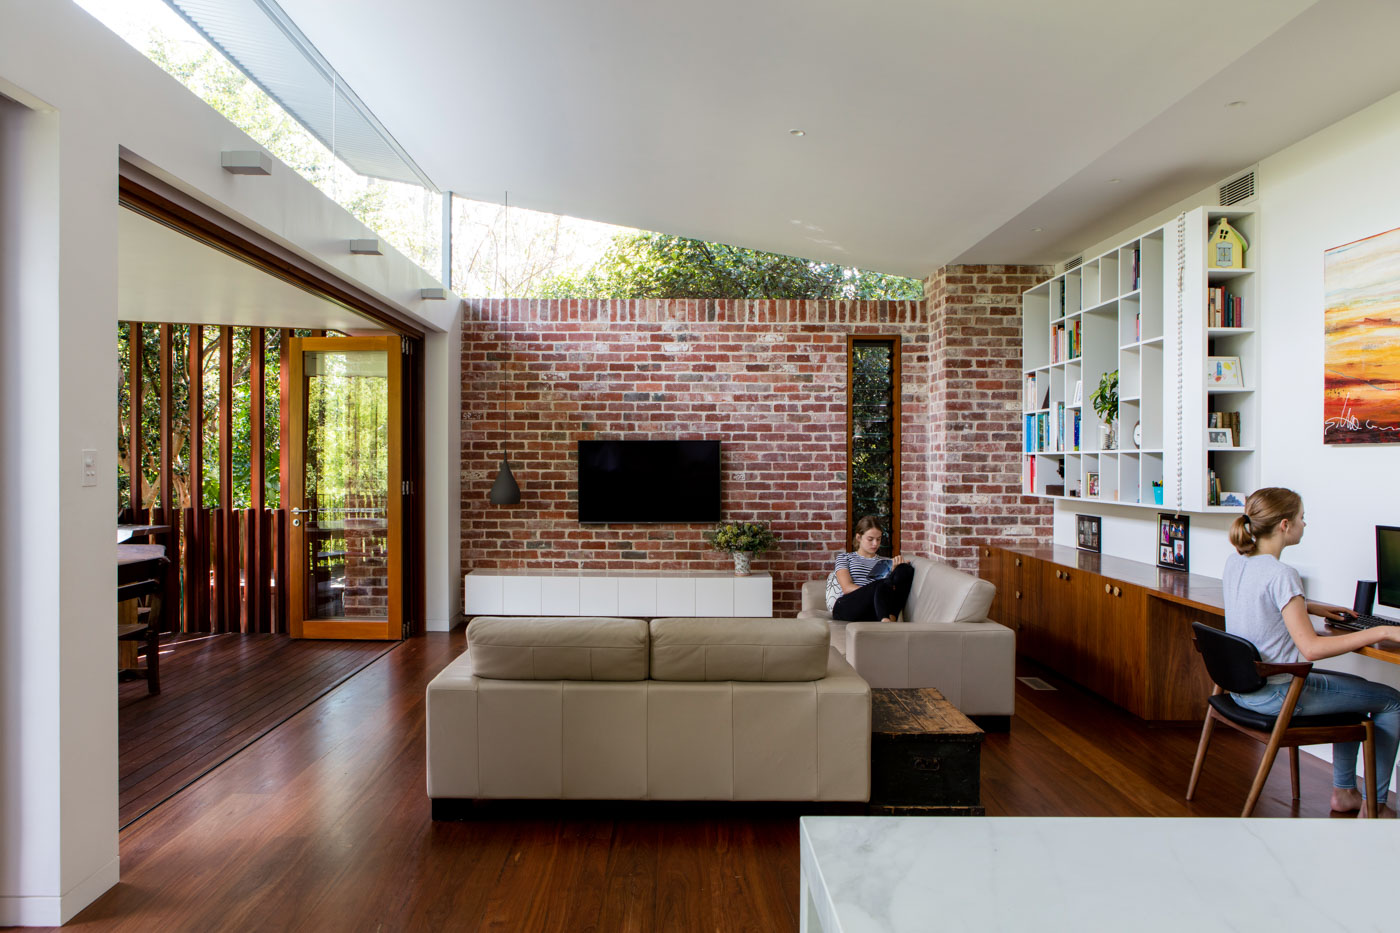 Roseville House by Sydney residential architects Sam Crawford Architects. This modern addition has high level windows bringing light in.